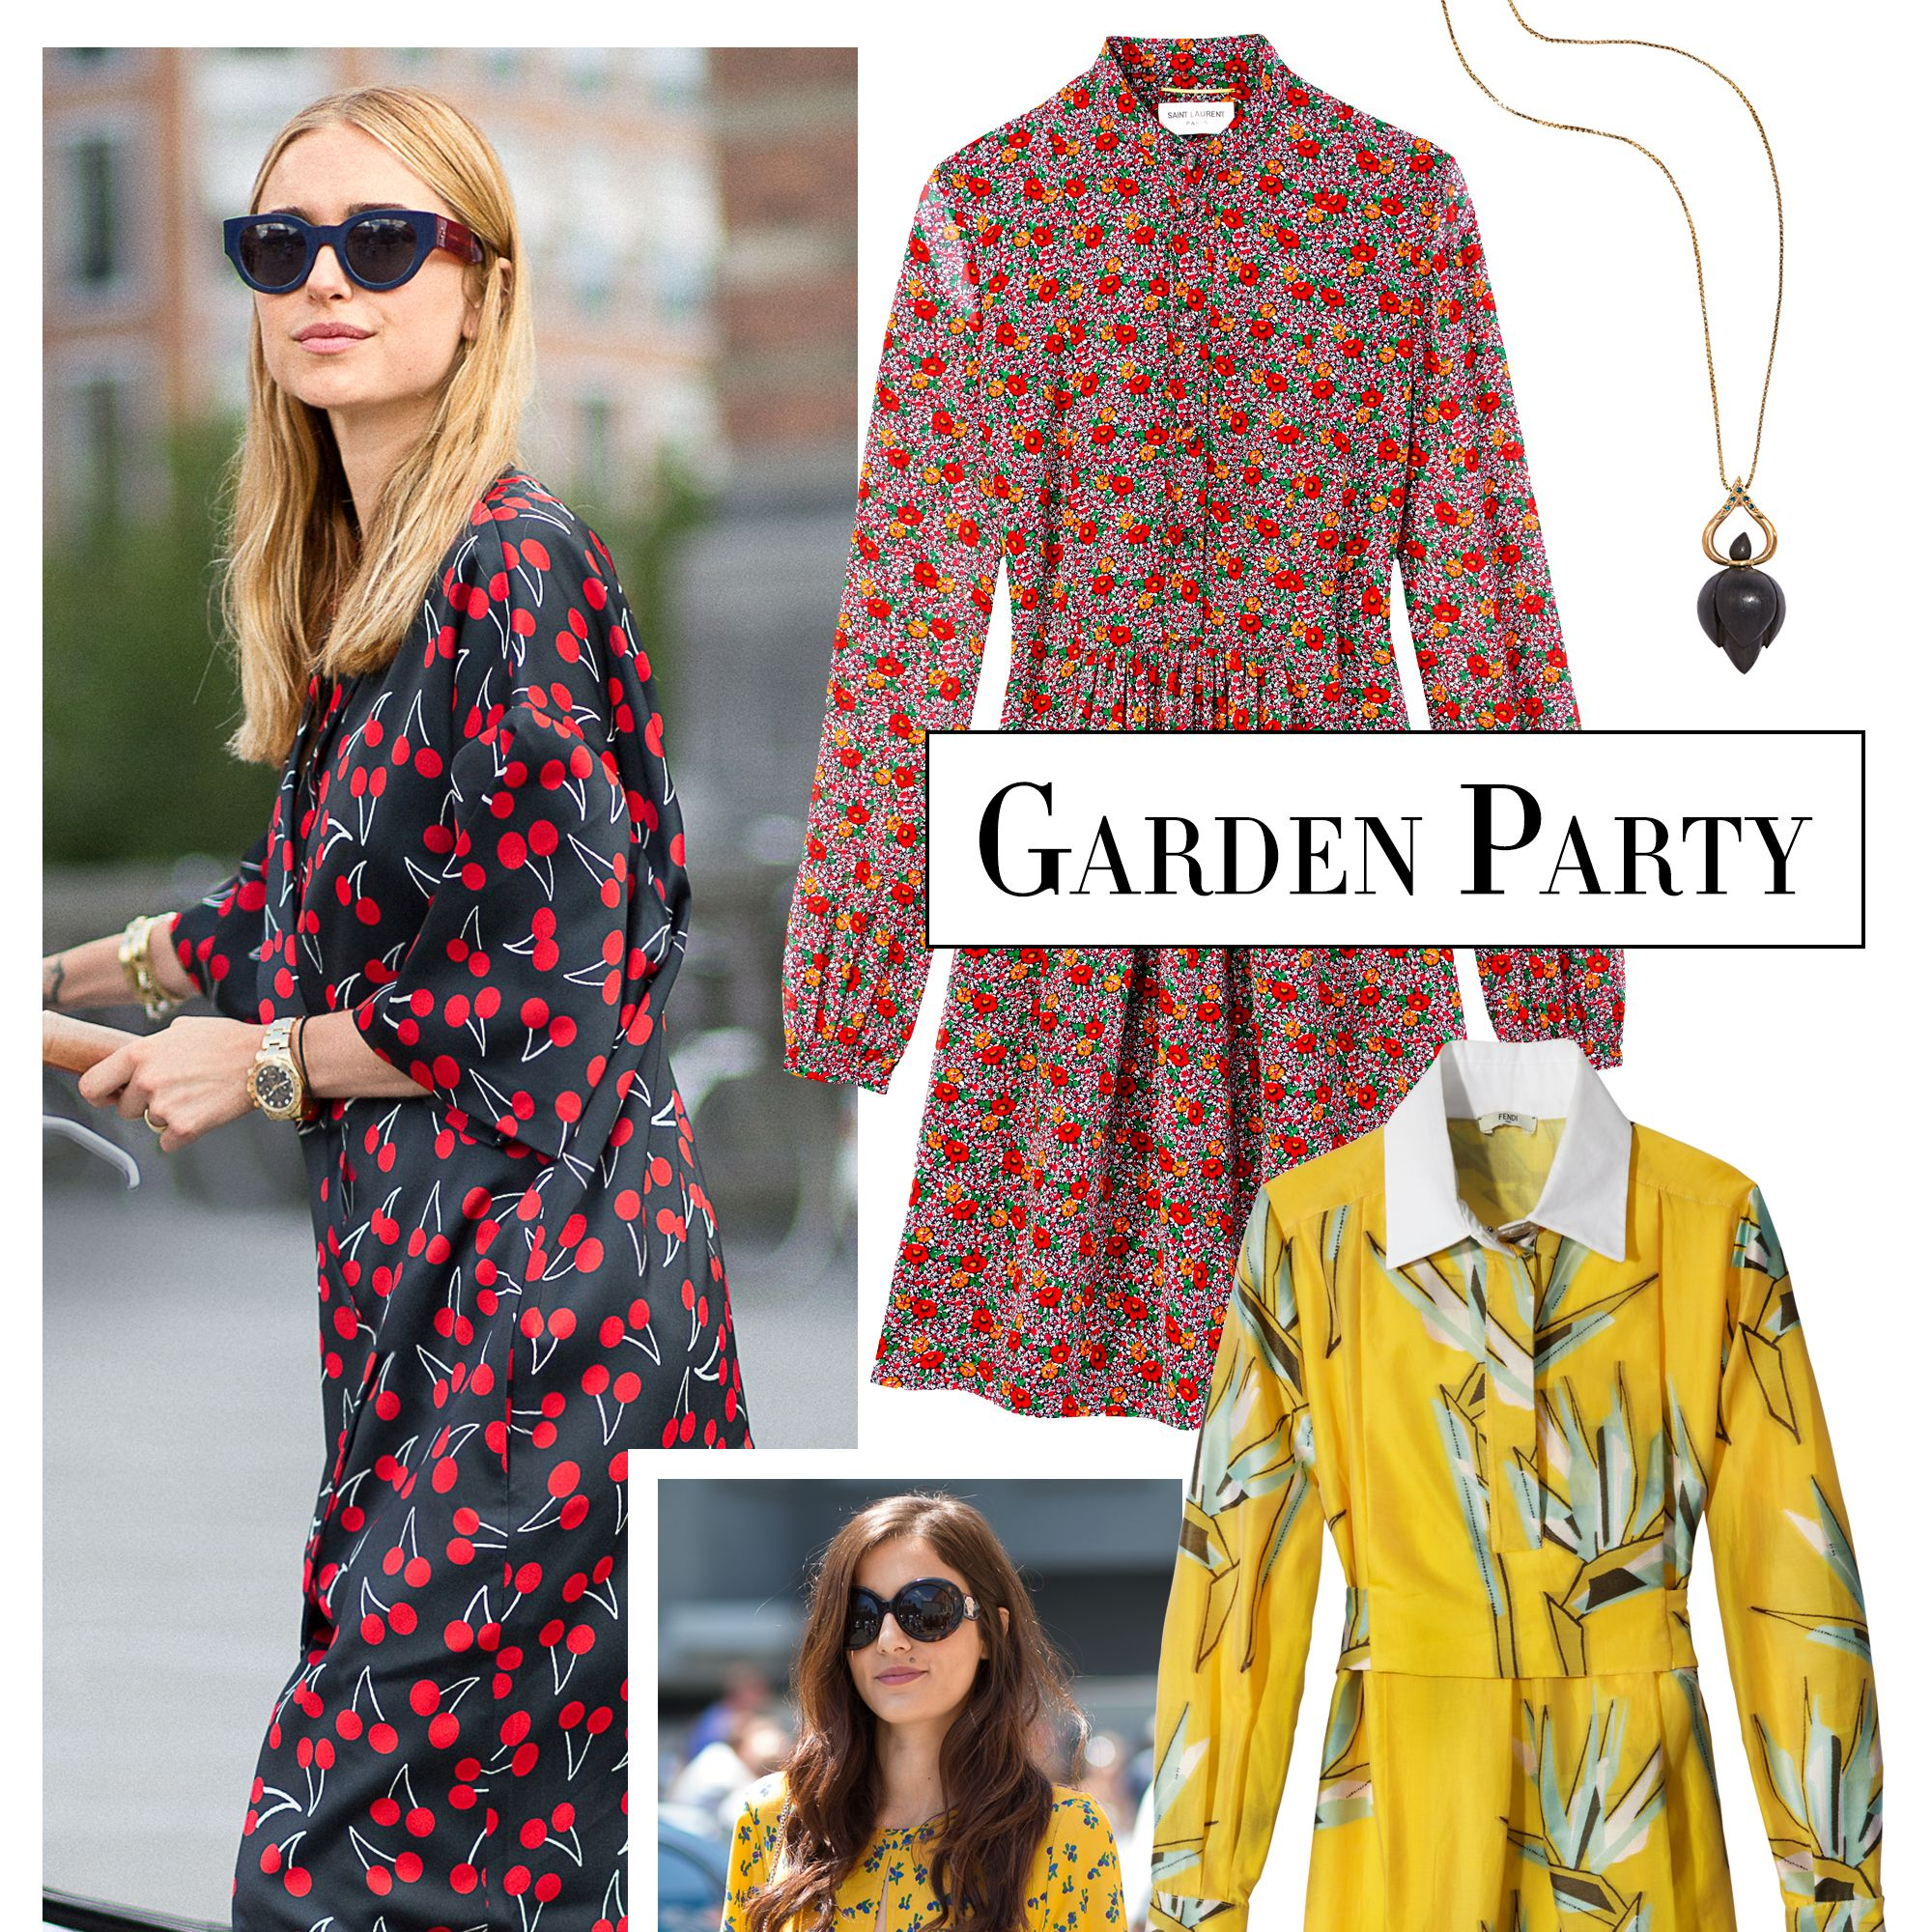 "<p>Bouquet-inspired prints bring a burst of femininity to fall's silhouettes. Team with a bold tote or vibrant heels, like stylist <a href=""http://lookdepernille.theyouway.com/"" target=""_blank"">Pernille Teisbaek</a>. </p><p><strong>Alice Cicolini </strong>necklace, $965, <a href=""http://www.alicecicolini.com/"" target=""_blank"">alicecicolini.com</a>&#x3B; <strong>Fendi </strong>dress, $2,500, 212-897-2244&#x3B; <strong>Saint Laurent by Hedi Slimane </strong>bag, $2,250, 212-980-2970&#x3B; <strong>Saint Laurent by Hedi Slimane </strong>dress, $2,750. </p>"